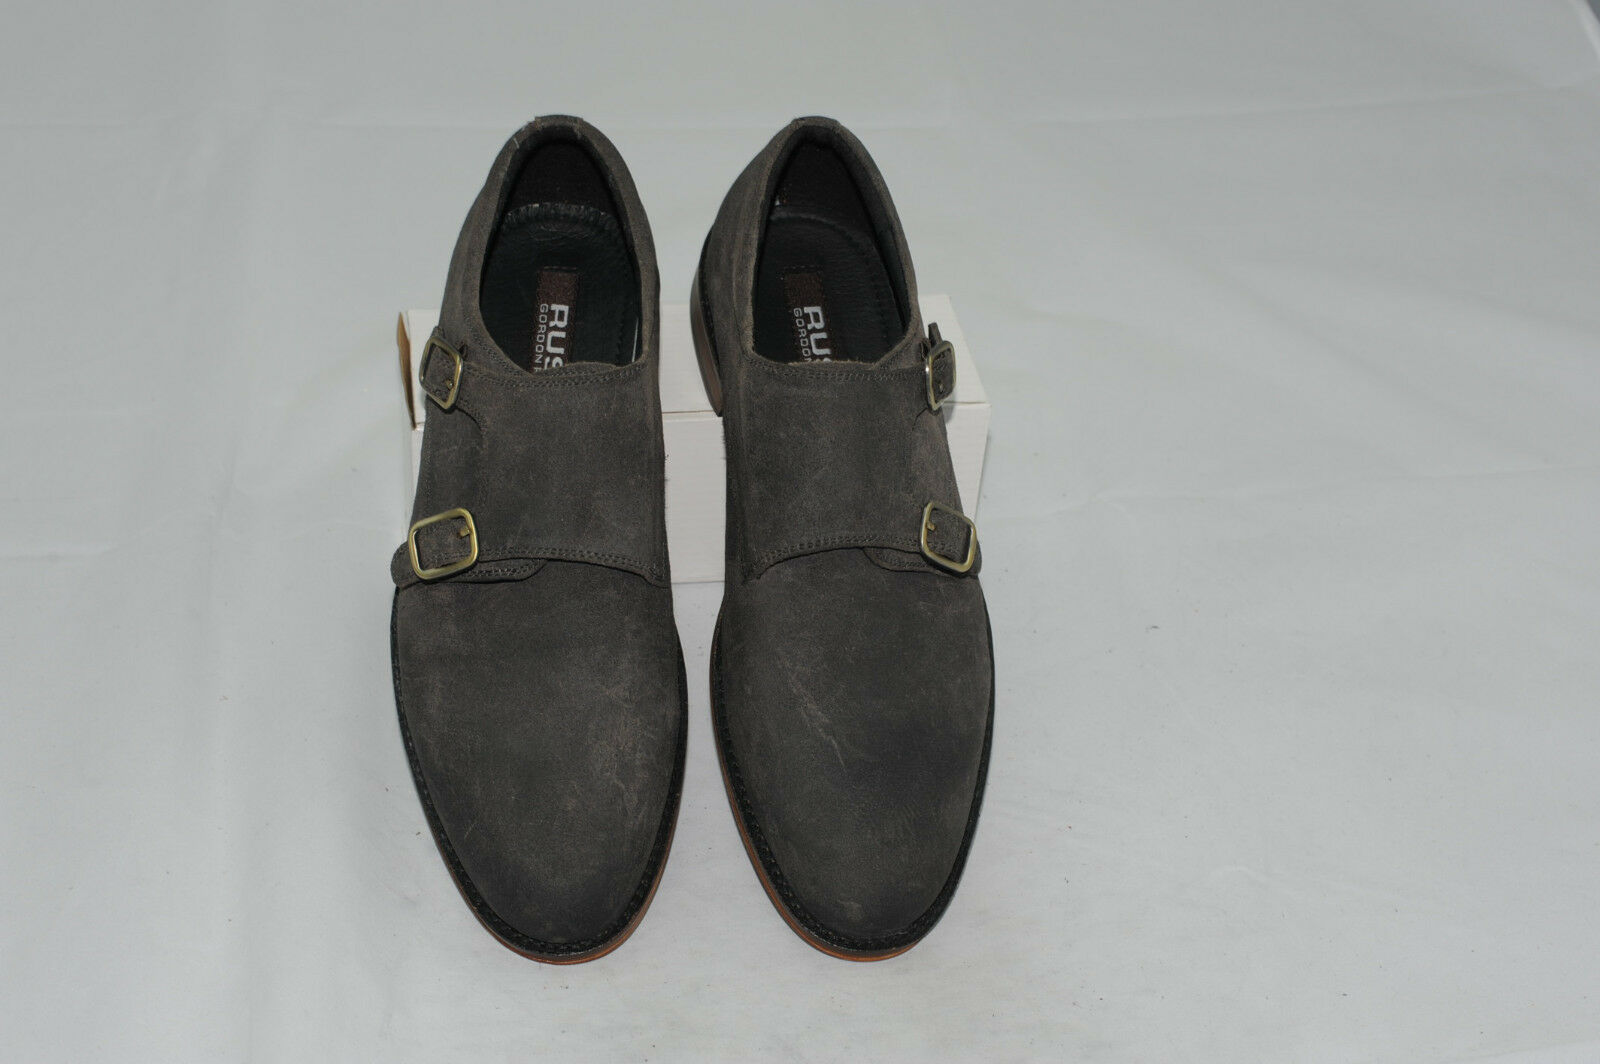 NWT Gordon Rush Men's Double Monk Strap Leather Dress shoes Size 7 M